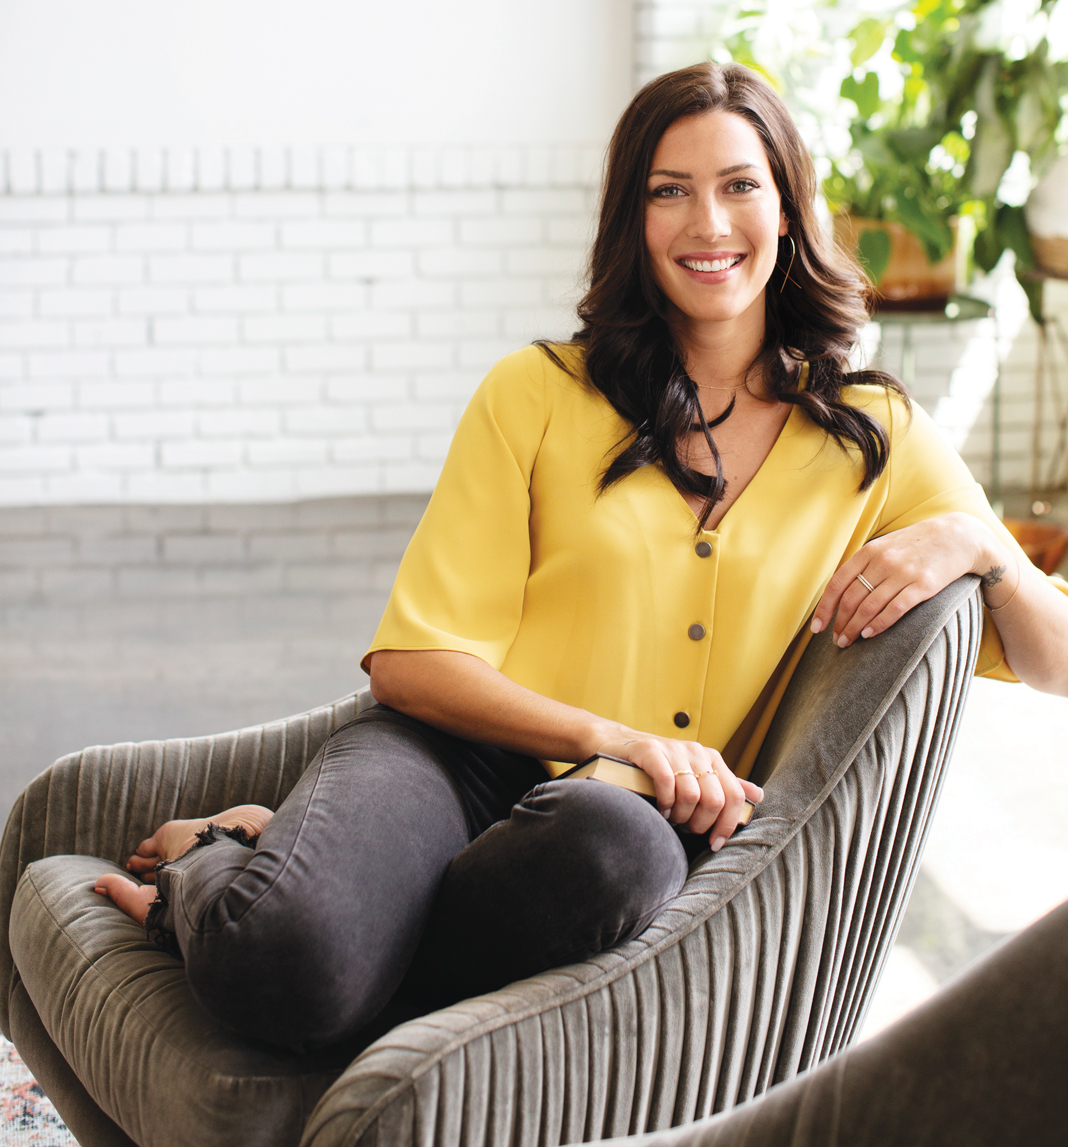 A portrait of Becca Kufrin sitting on a couch.